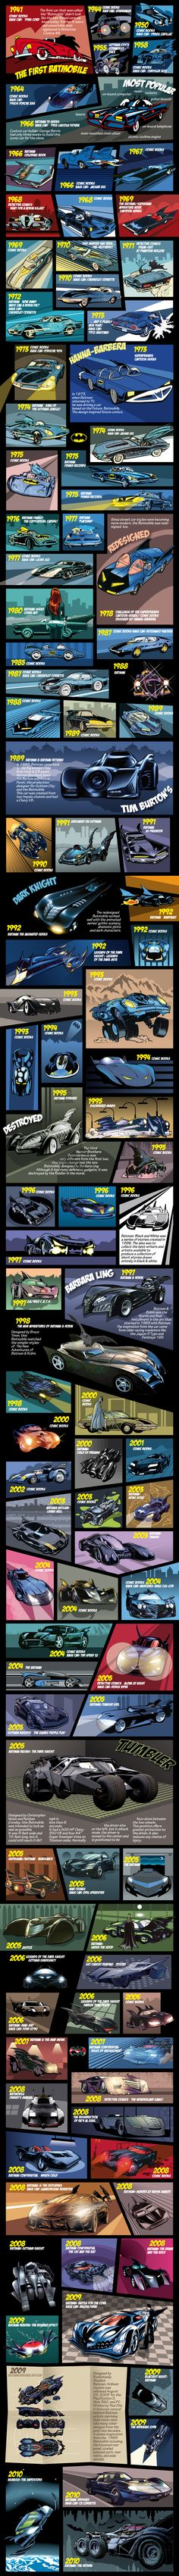 History of the Batmobile. I didn't know there were so many.